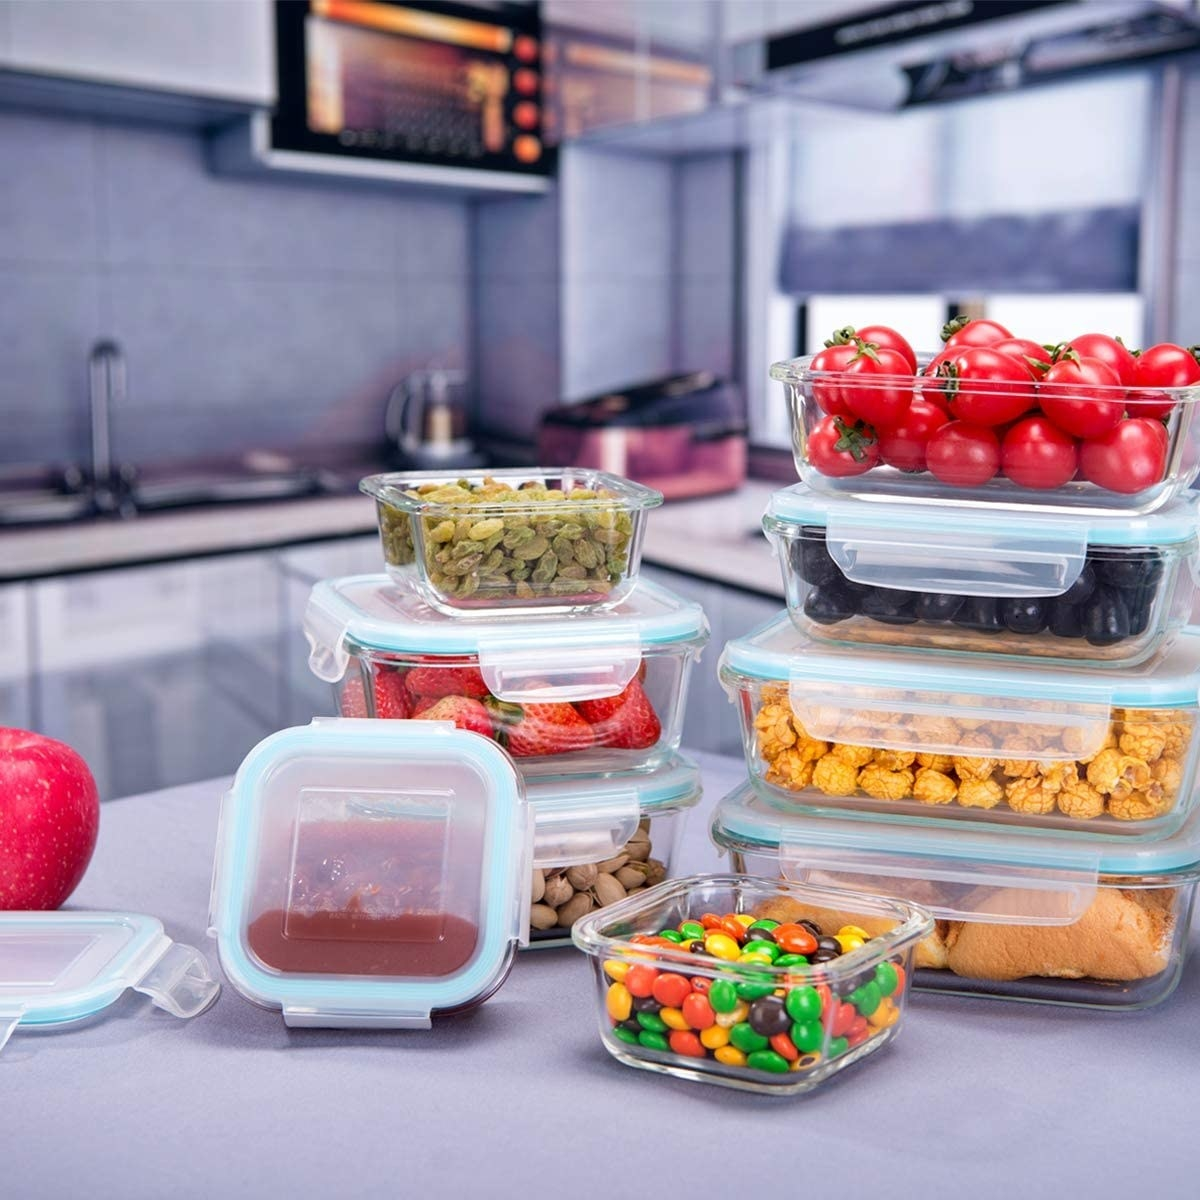 The glasses food storage containers in assorted sizes filled with different kinds of food on a counter